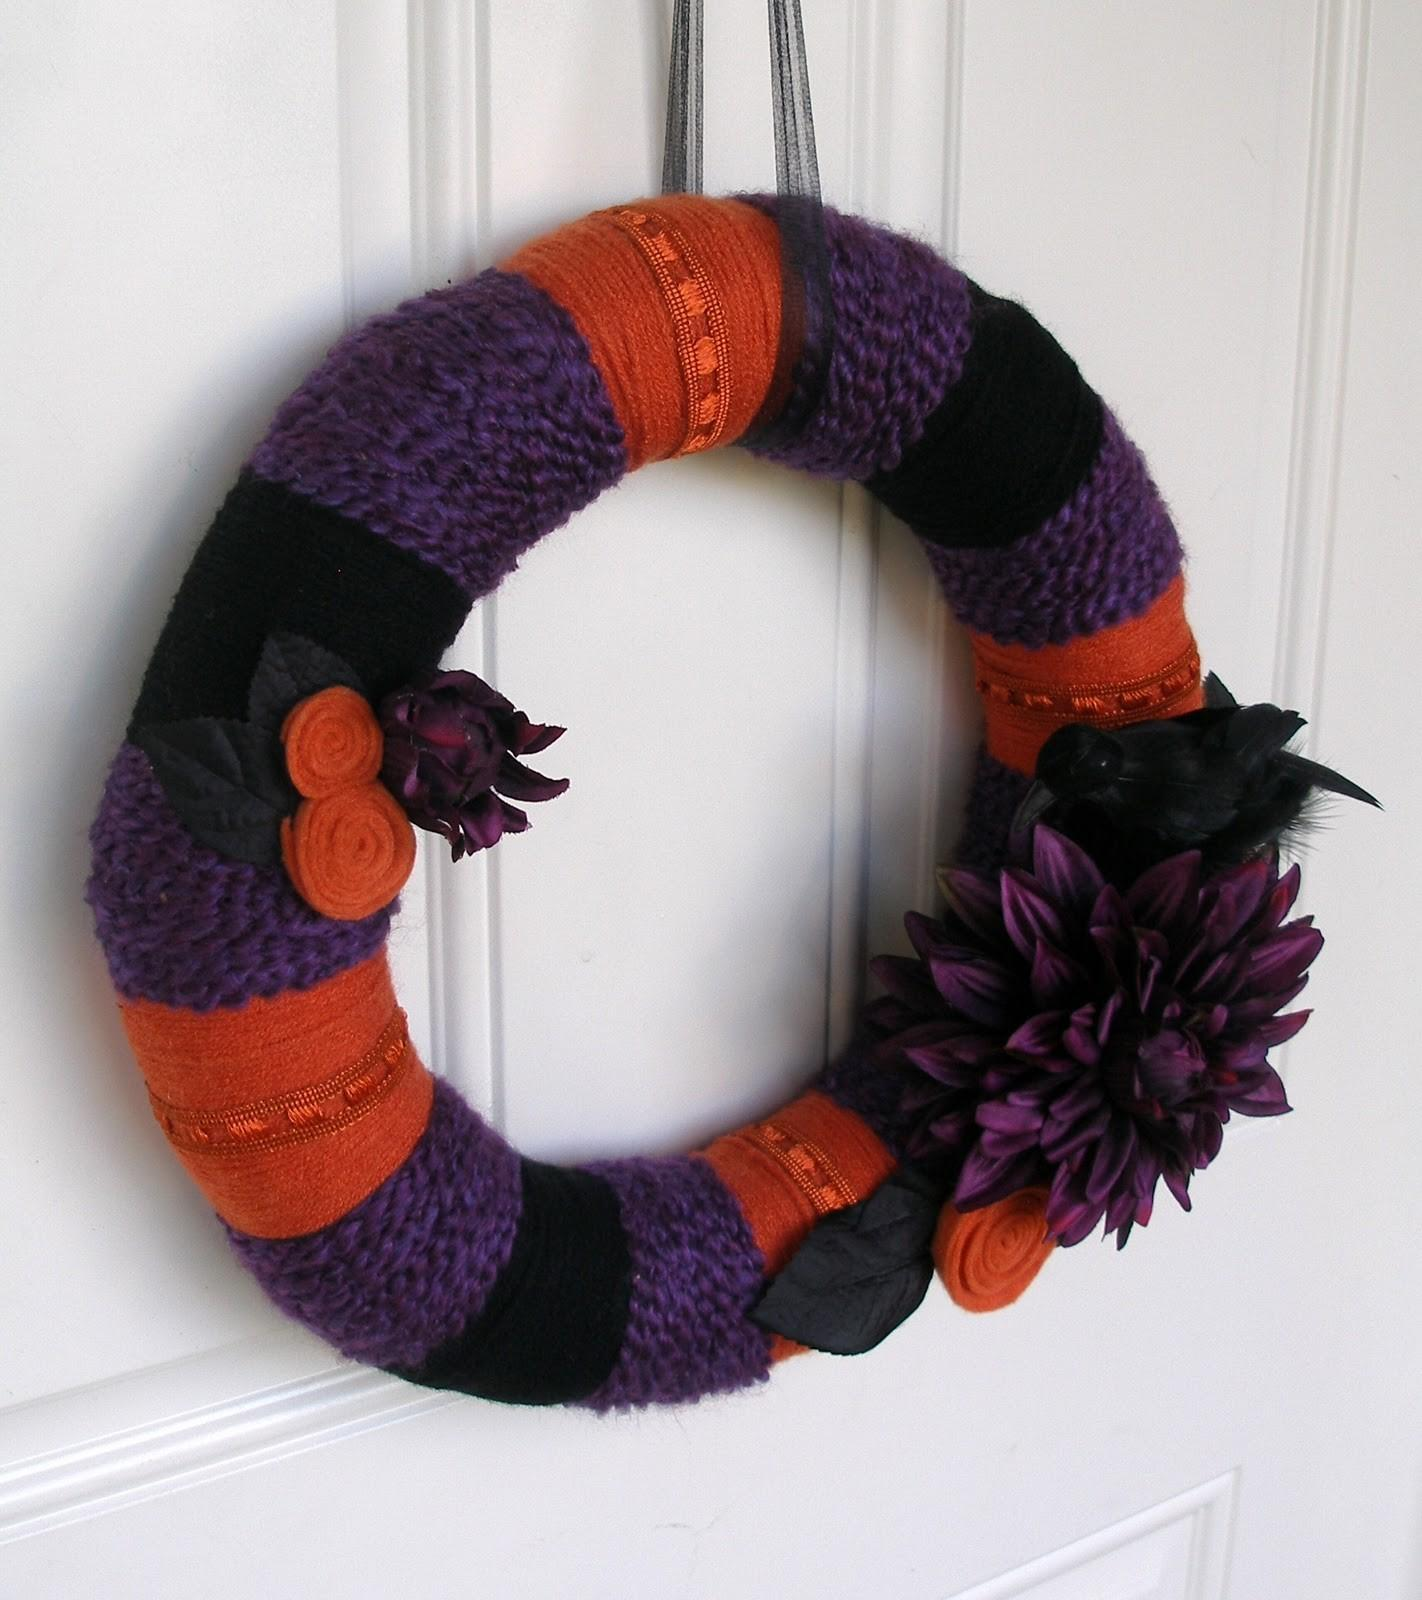 Precocious Paper Holiday Wreaths